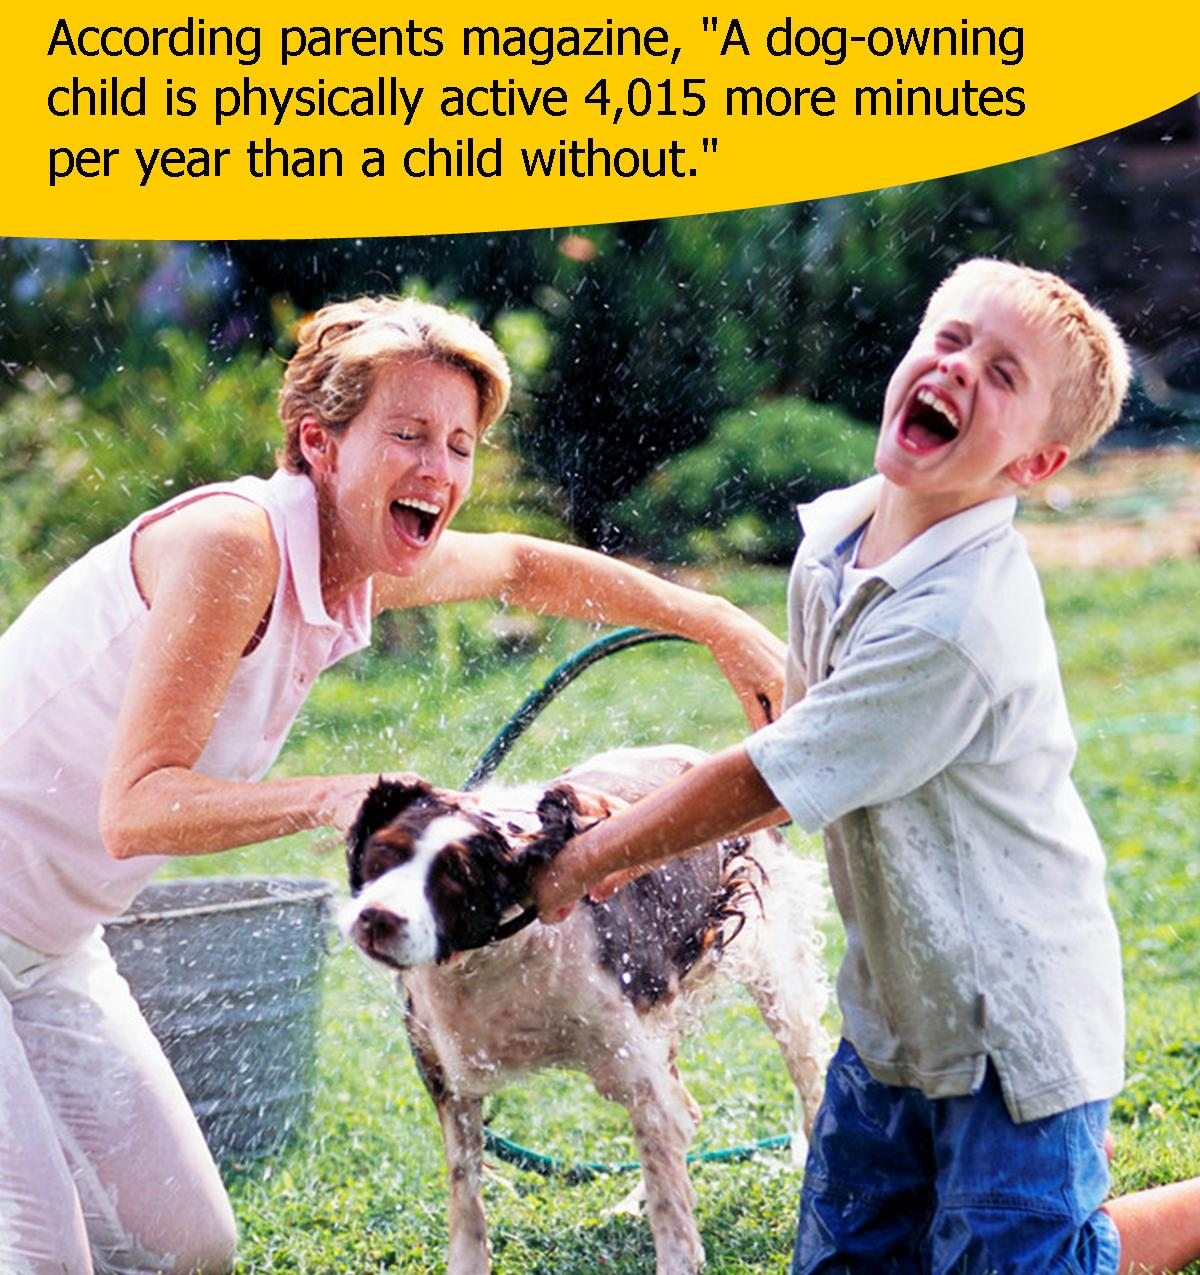 Dog Owners are More Active